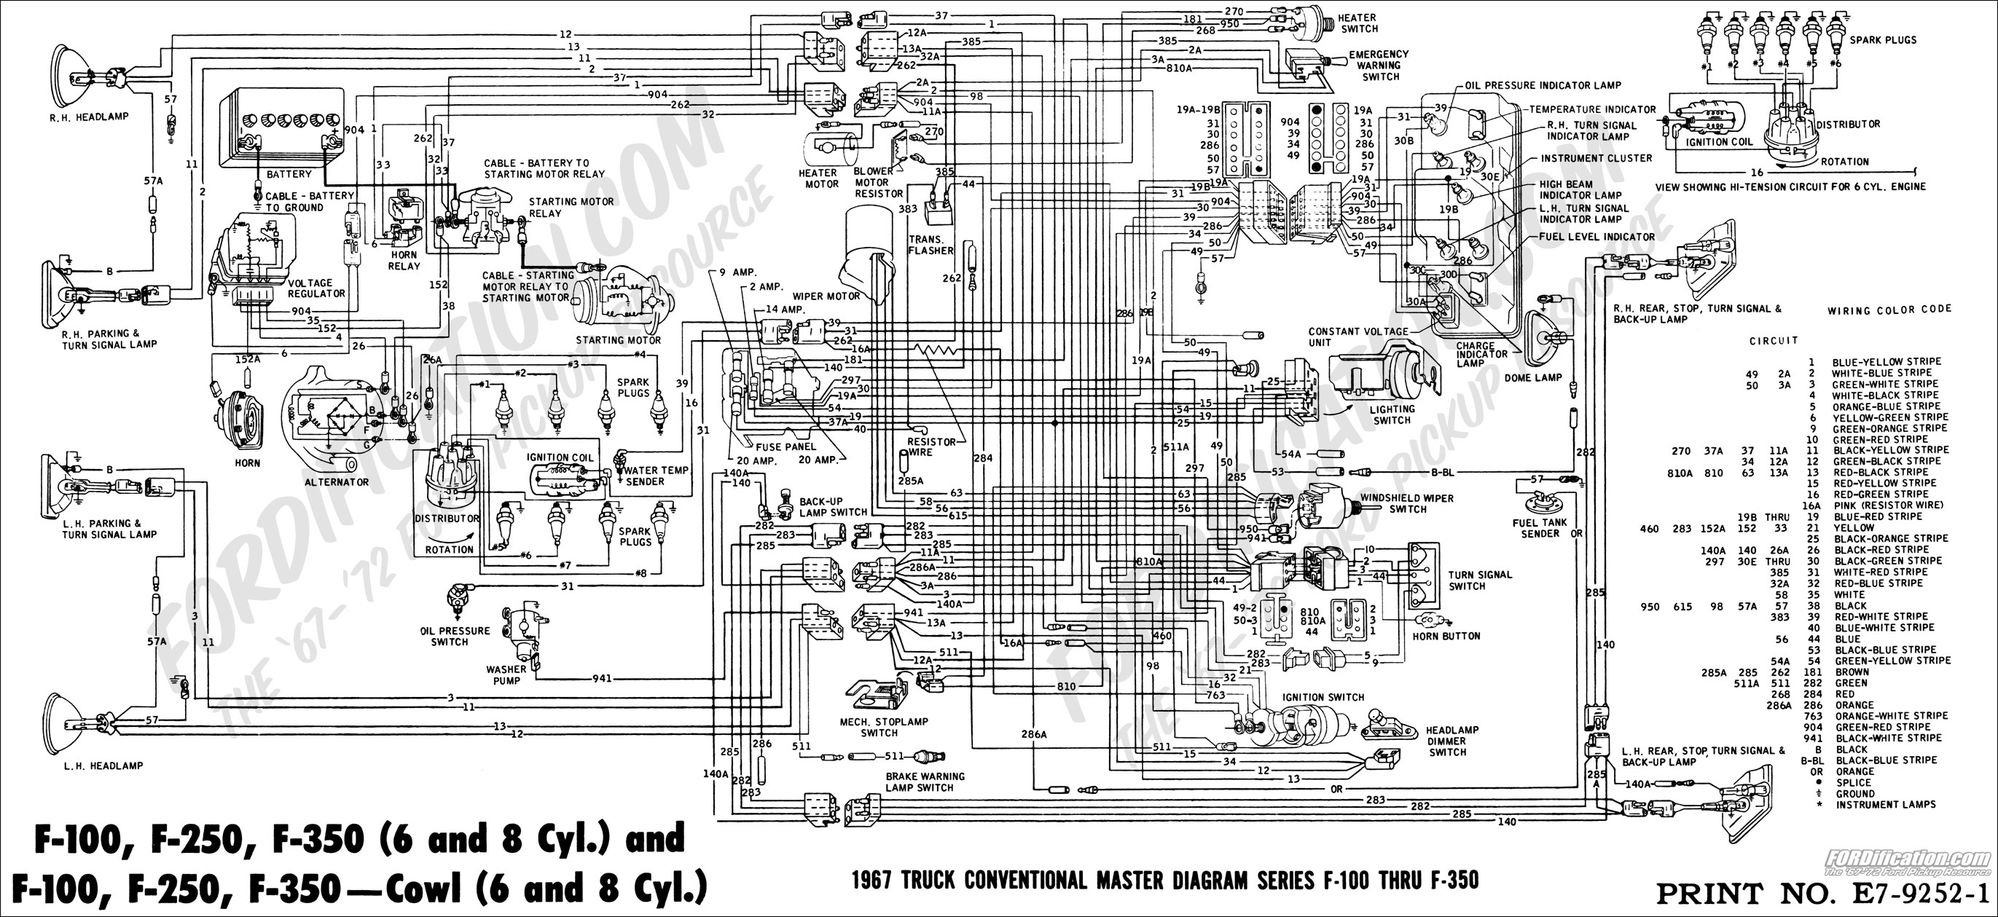 41 ford and turn signal wiring ford schematics and wiring diagrams Ford Pickup Wiring Diagrams 41 ford wiring diagram